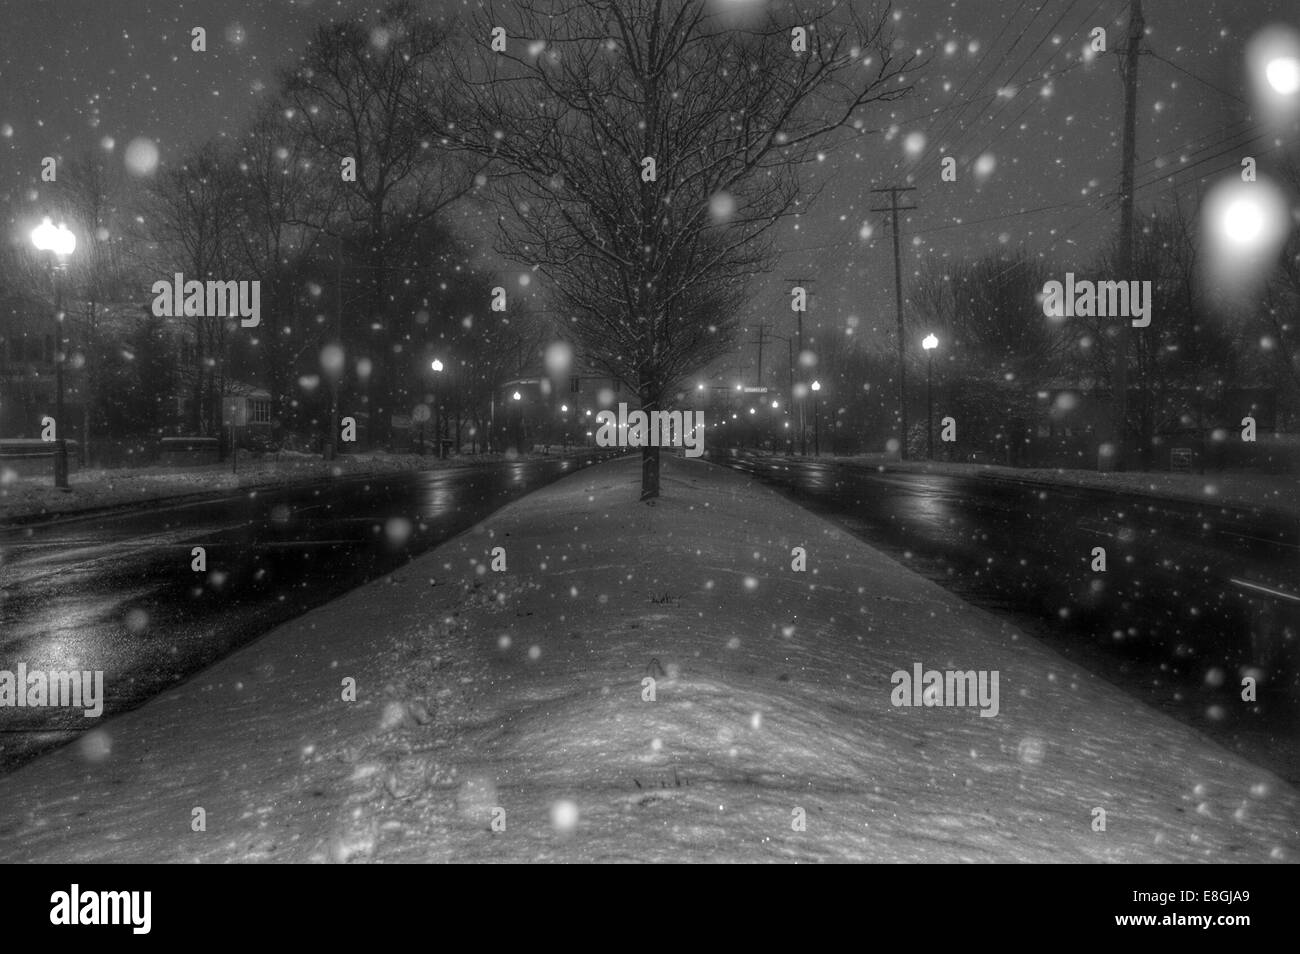 USA, Indiana, Hamilton County, Fishers, Winter Wonderland - Stock Image